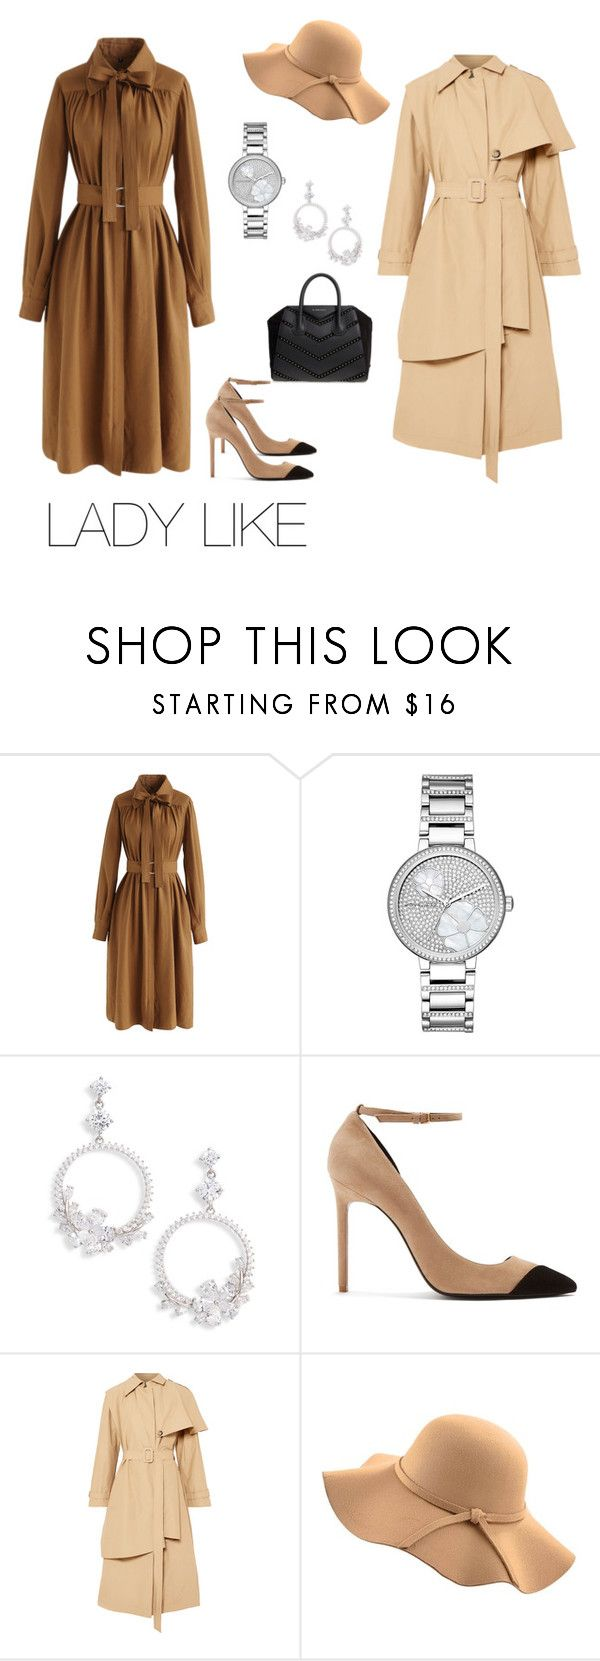 """""""LADY LIKE"""" by e-matytsyna on Polyvore featuring мода, Chicwish, Michael Kors, Nina, Yves Saint Laurent, A.W.A.K.E., WithChic, Givenchy и ladylike"""